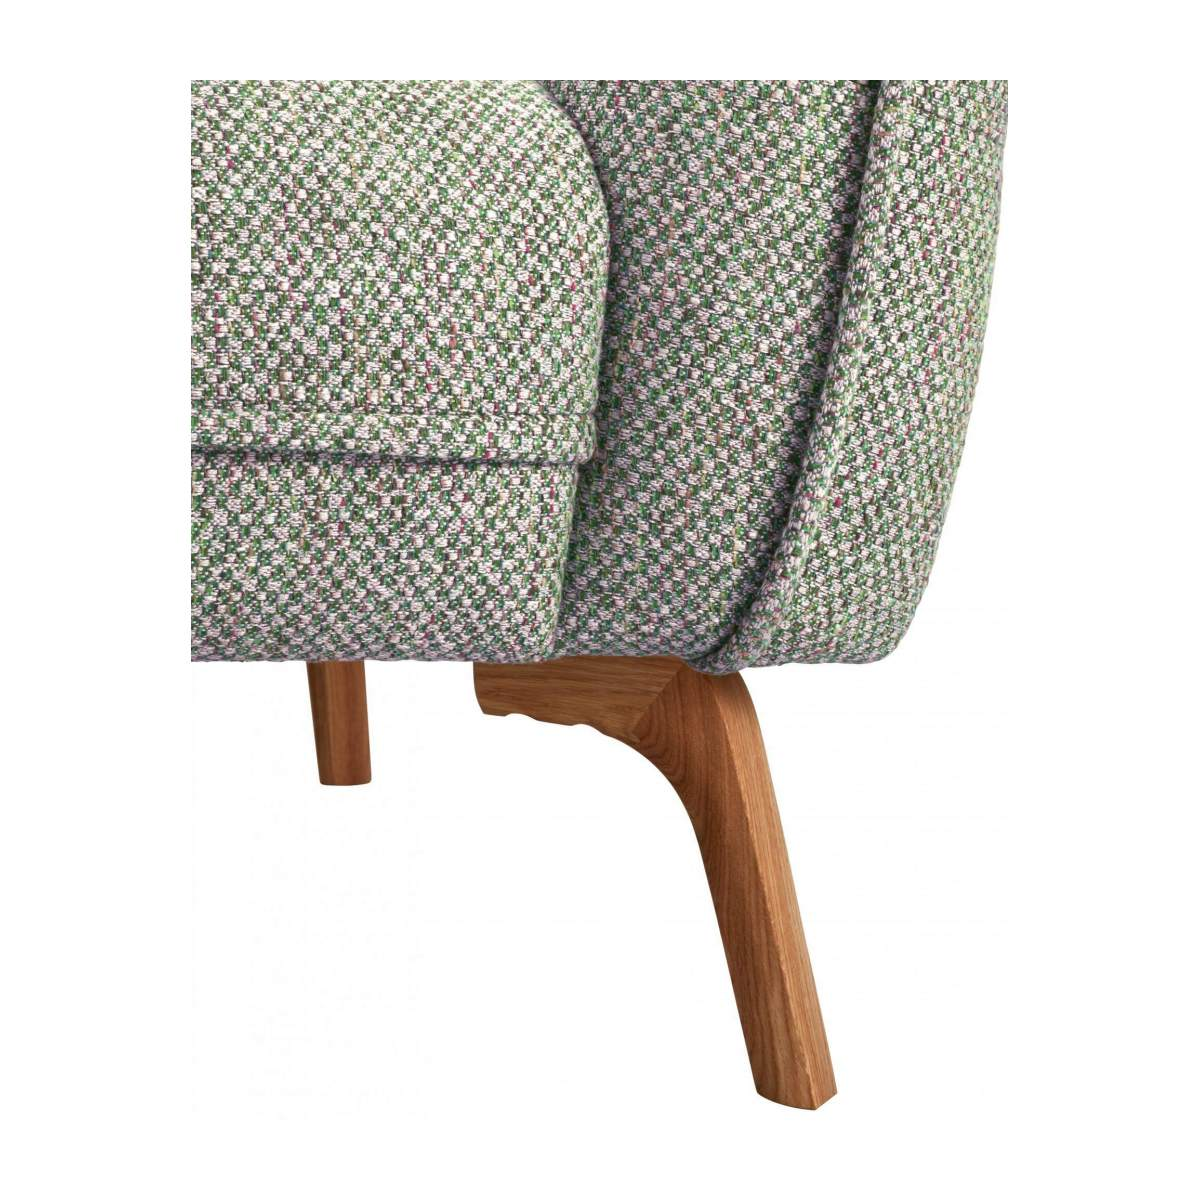 COMO/ARMCHAIR BELLAGIO GREEN OAK LEGS